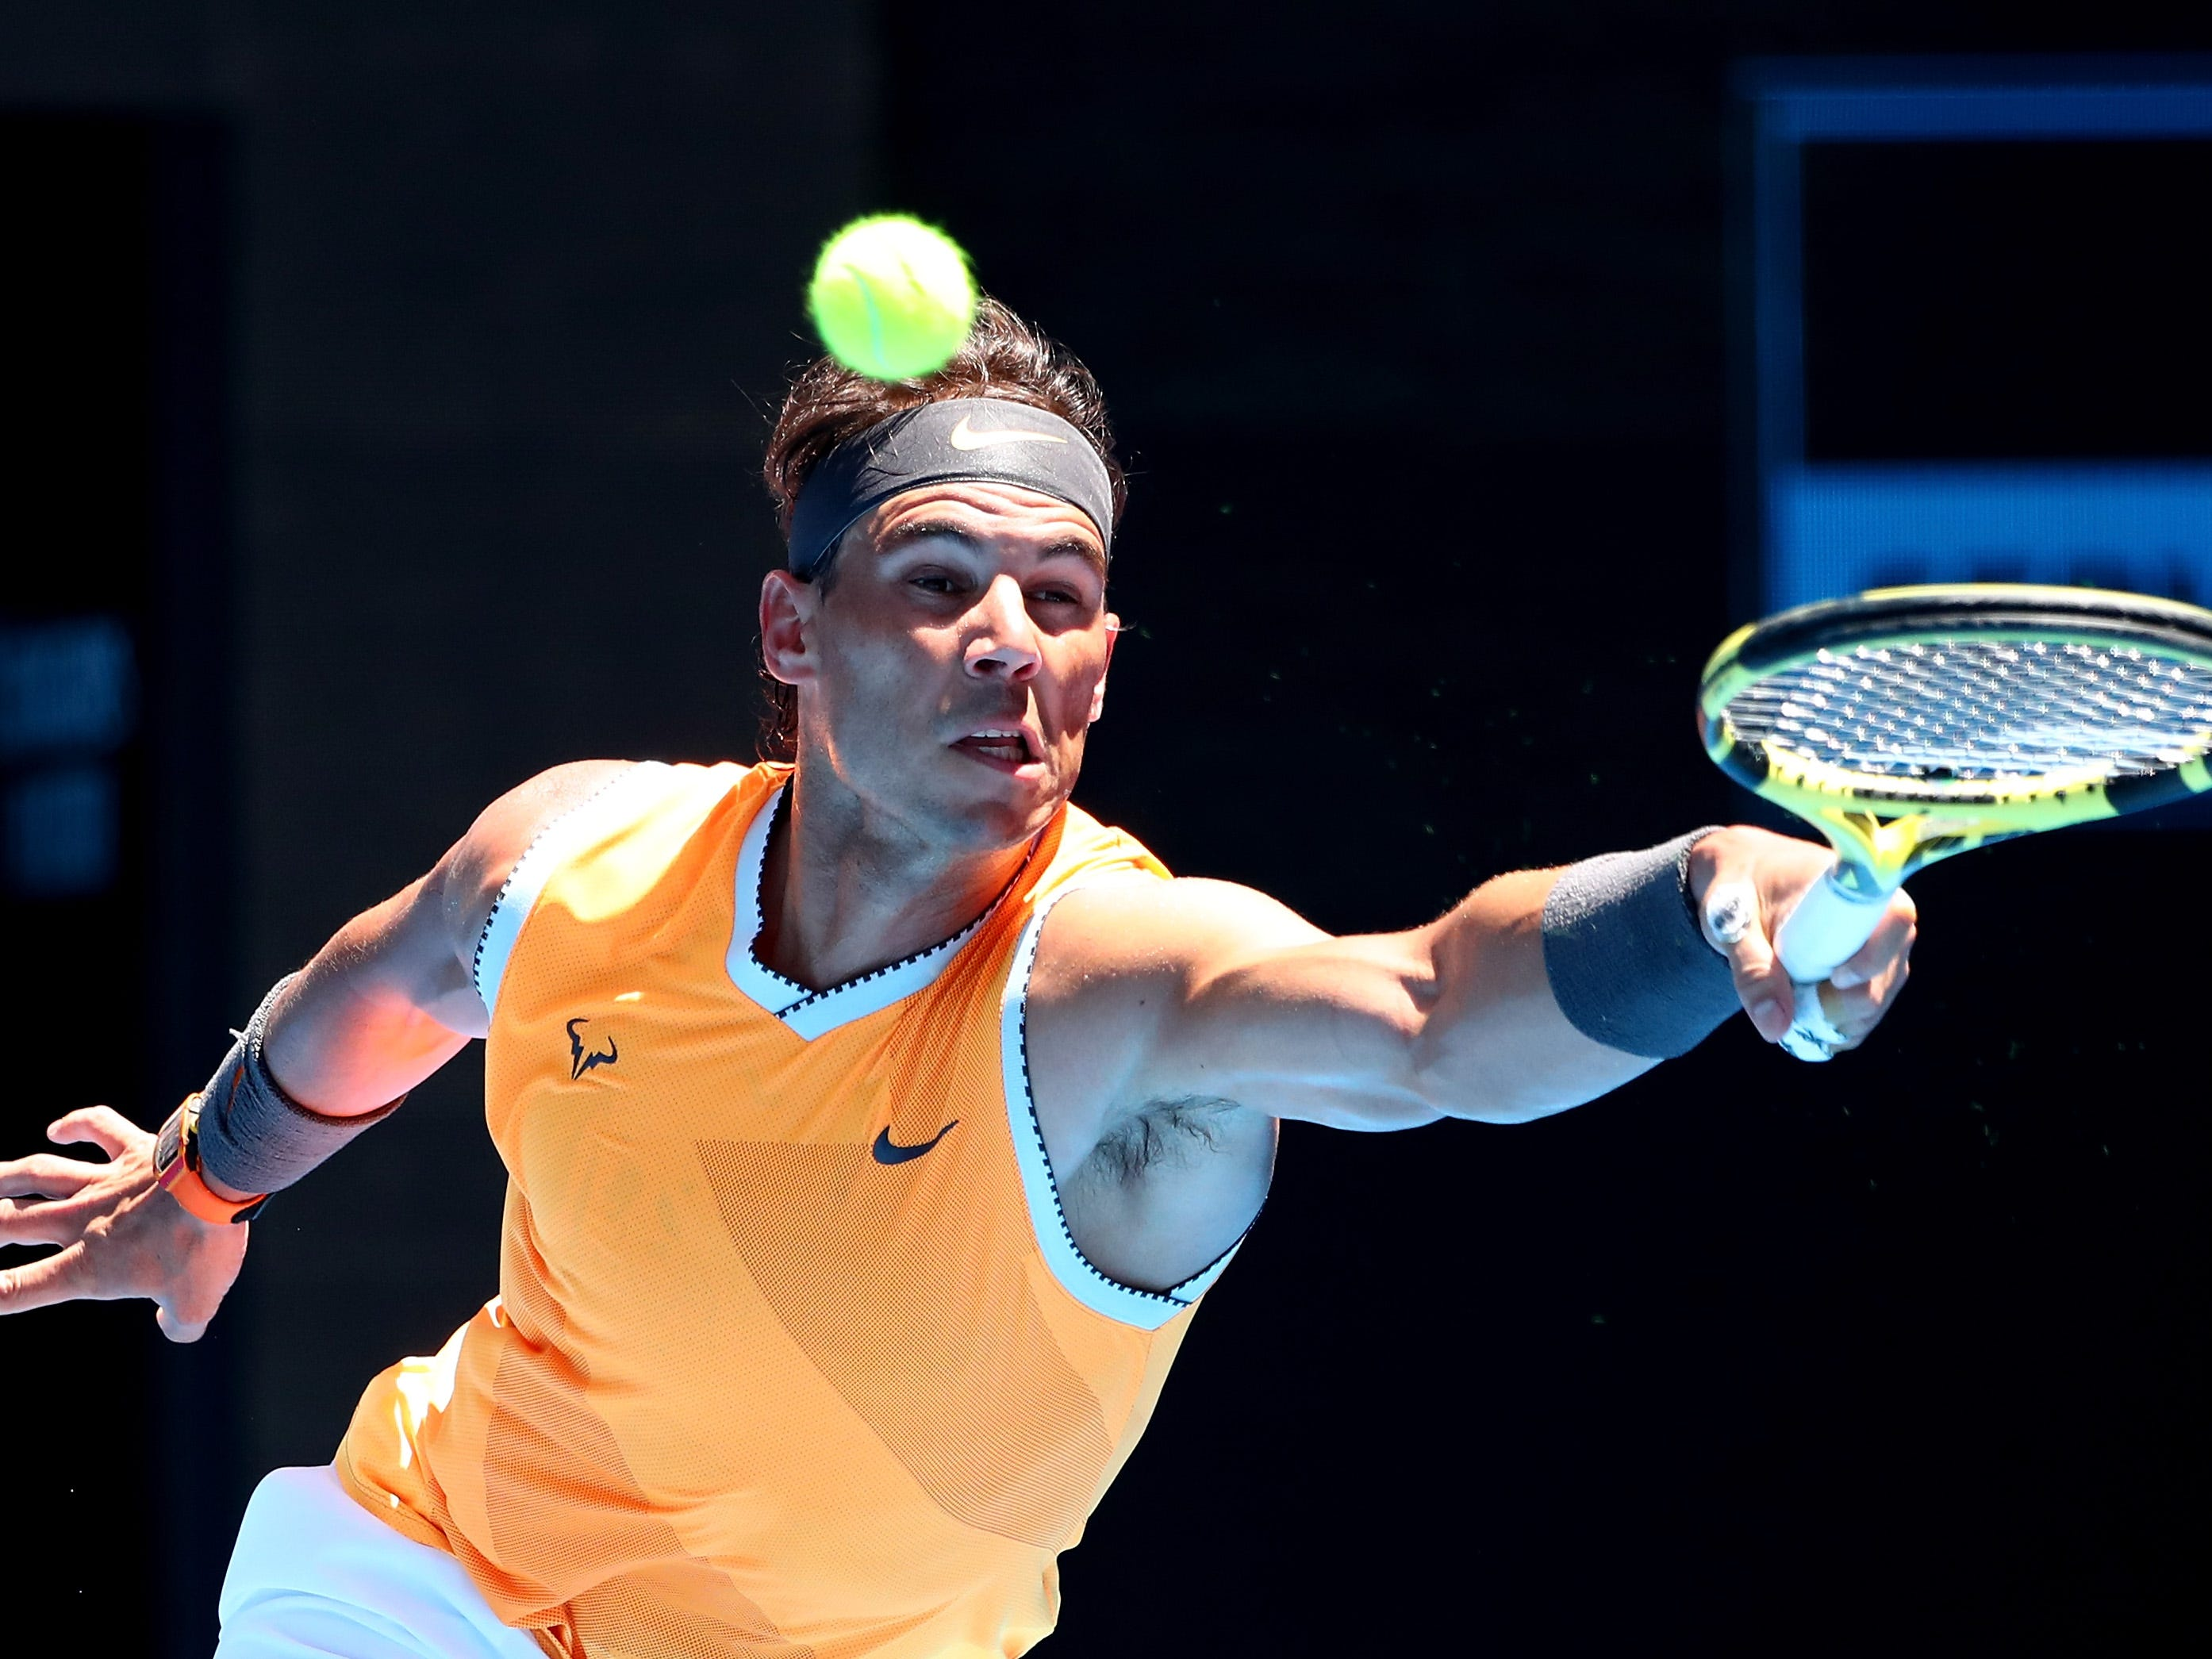 No. 2 seed Rafael Nadal, stretching to play a forehand, earned a comfortable 6-4, 6-3, 7-5 first-round win over Australian James Duckworth.